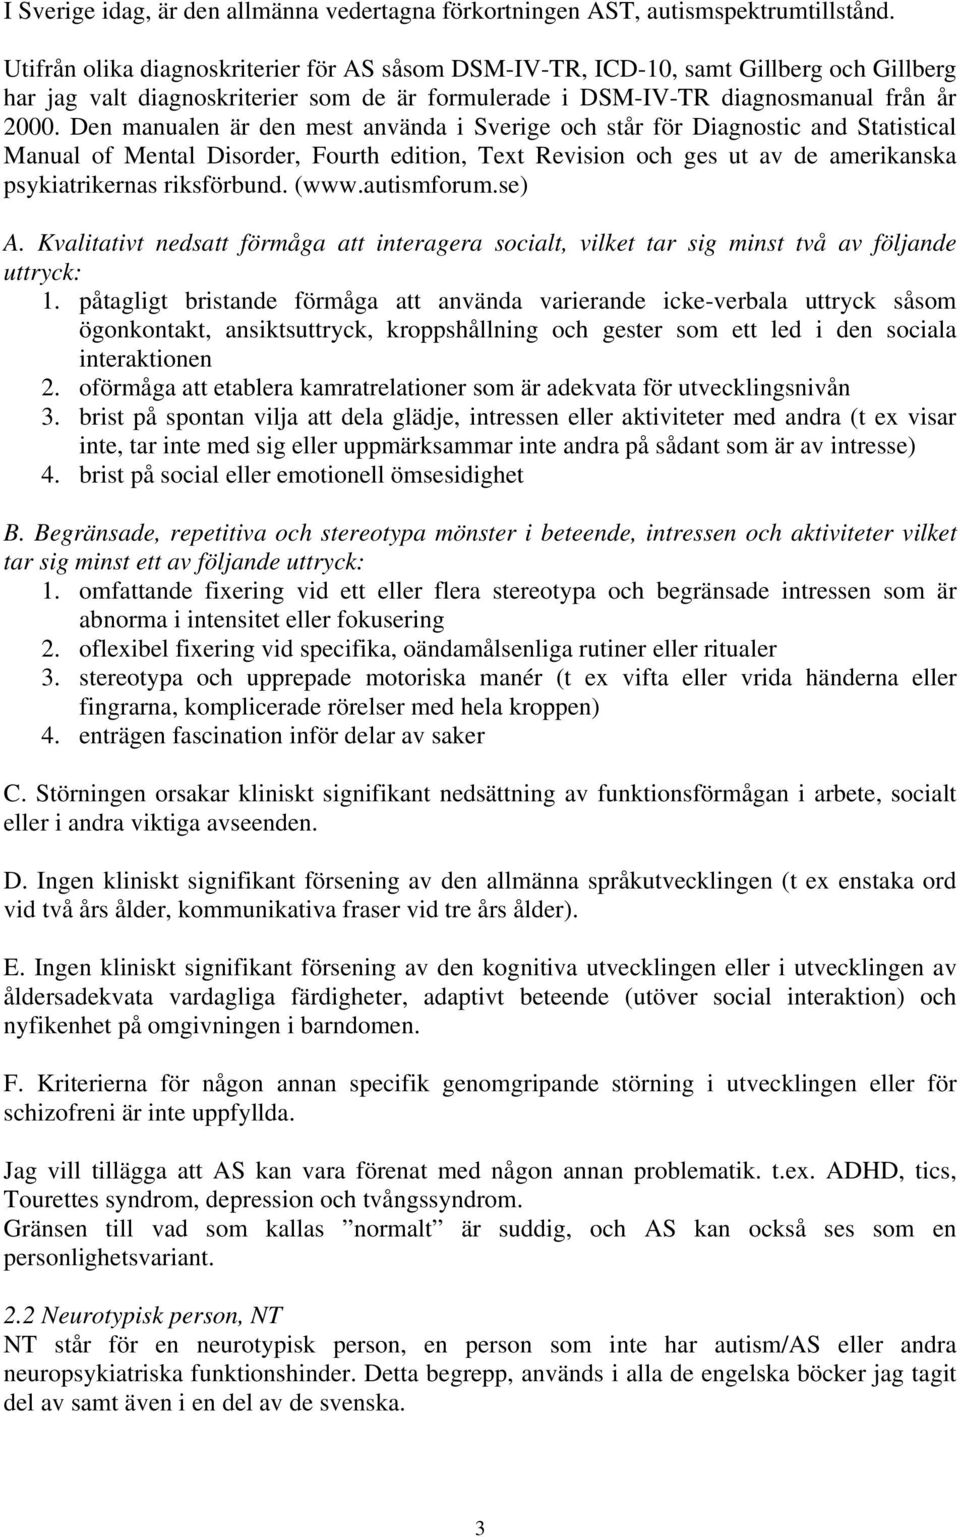 Den manualen är den mest använda i Sverige och står för Diagnostic and Statistical Manual of Mental Disorder, Fourth edition, Text Revision och ges ut av de amerikanska psykiatrikernas riksförbund.